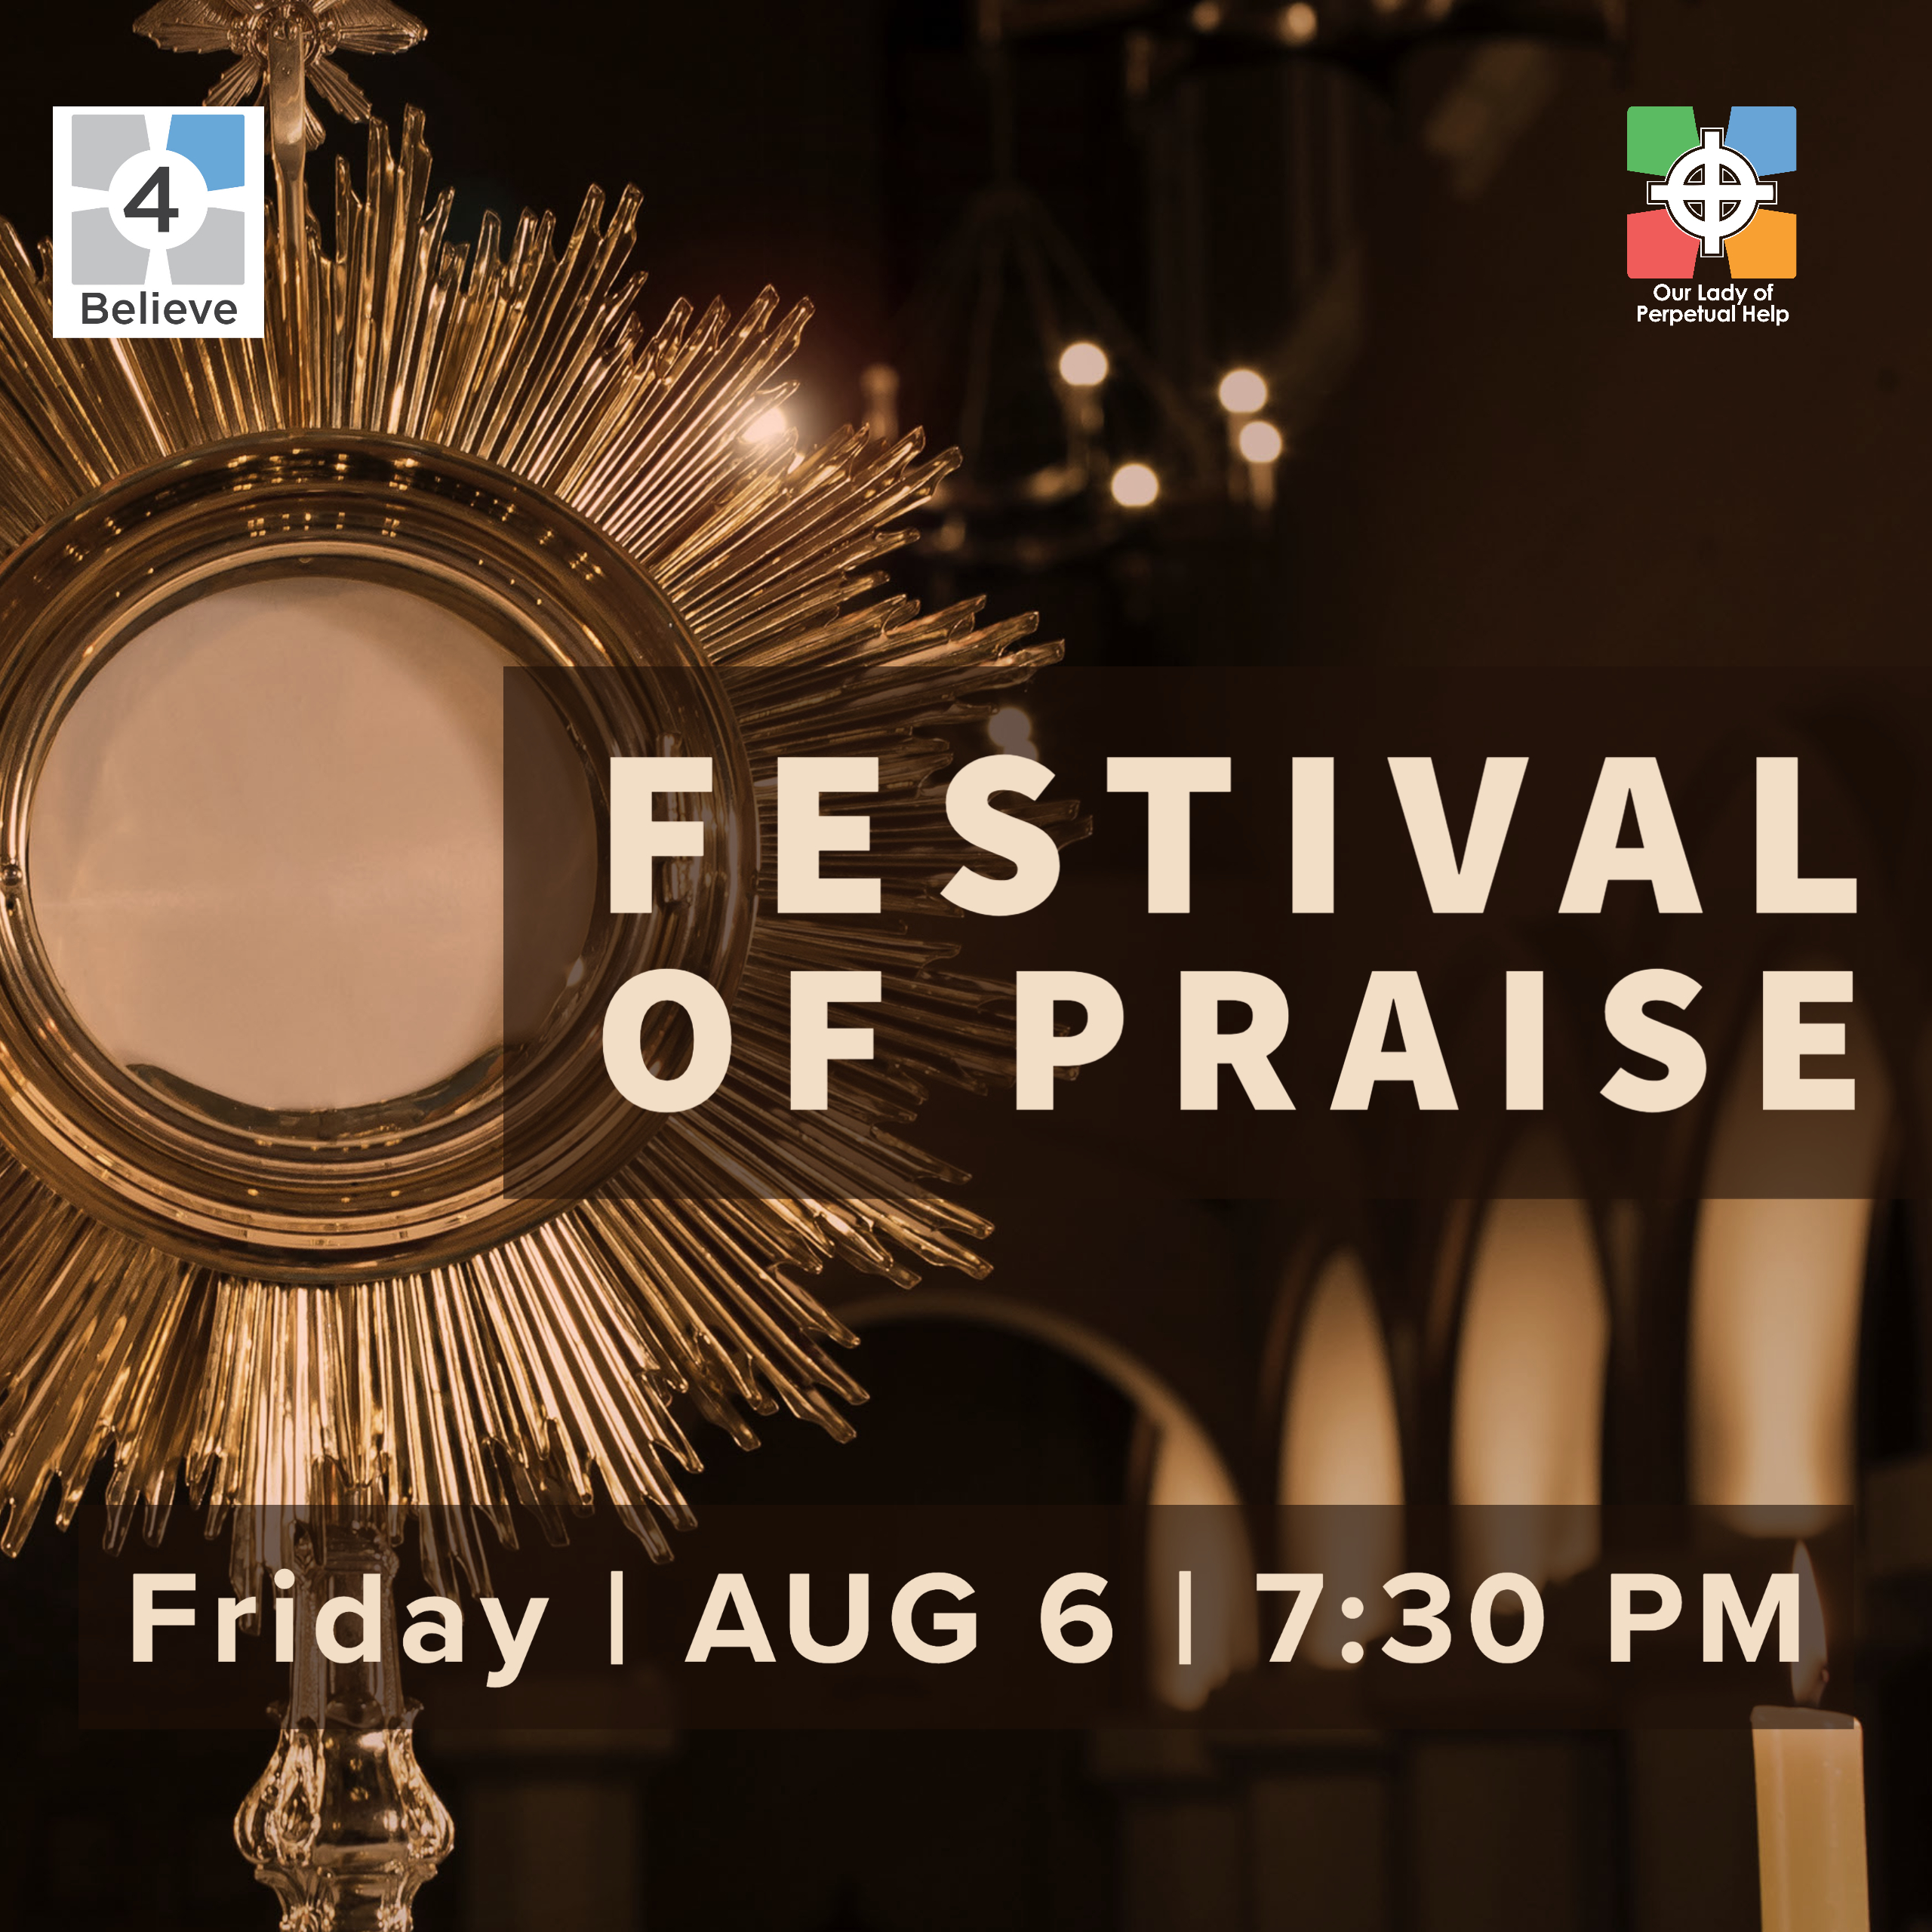 Graphic for Festival of Praise at OLPH Church in Ellicott City for Aug 2021